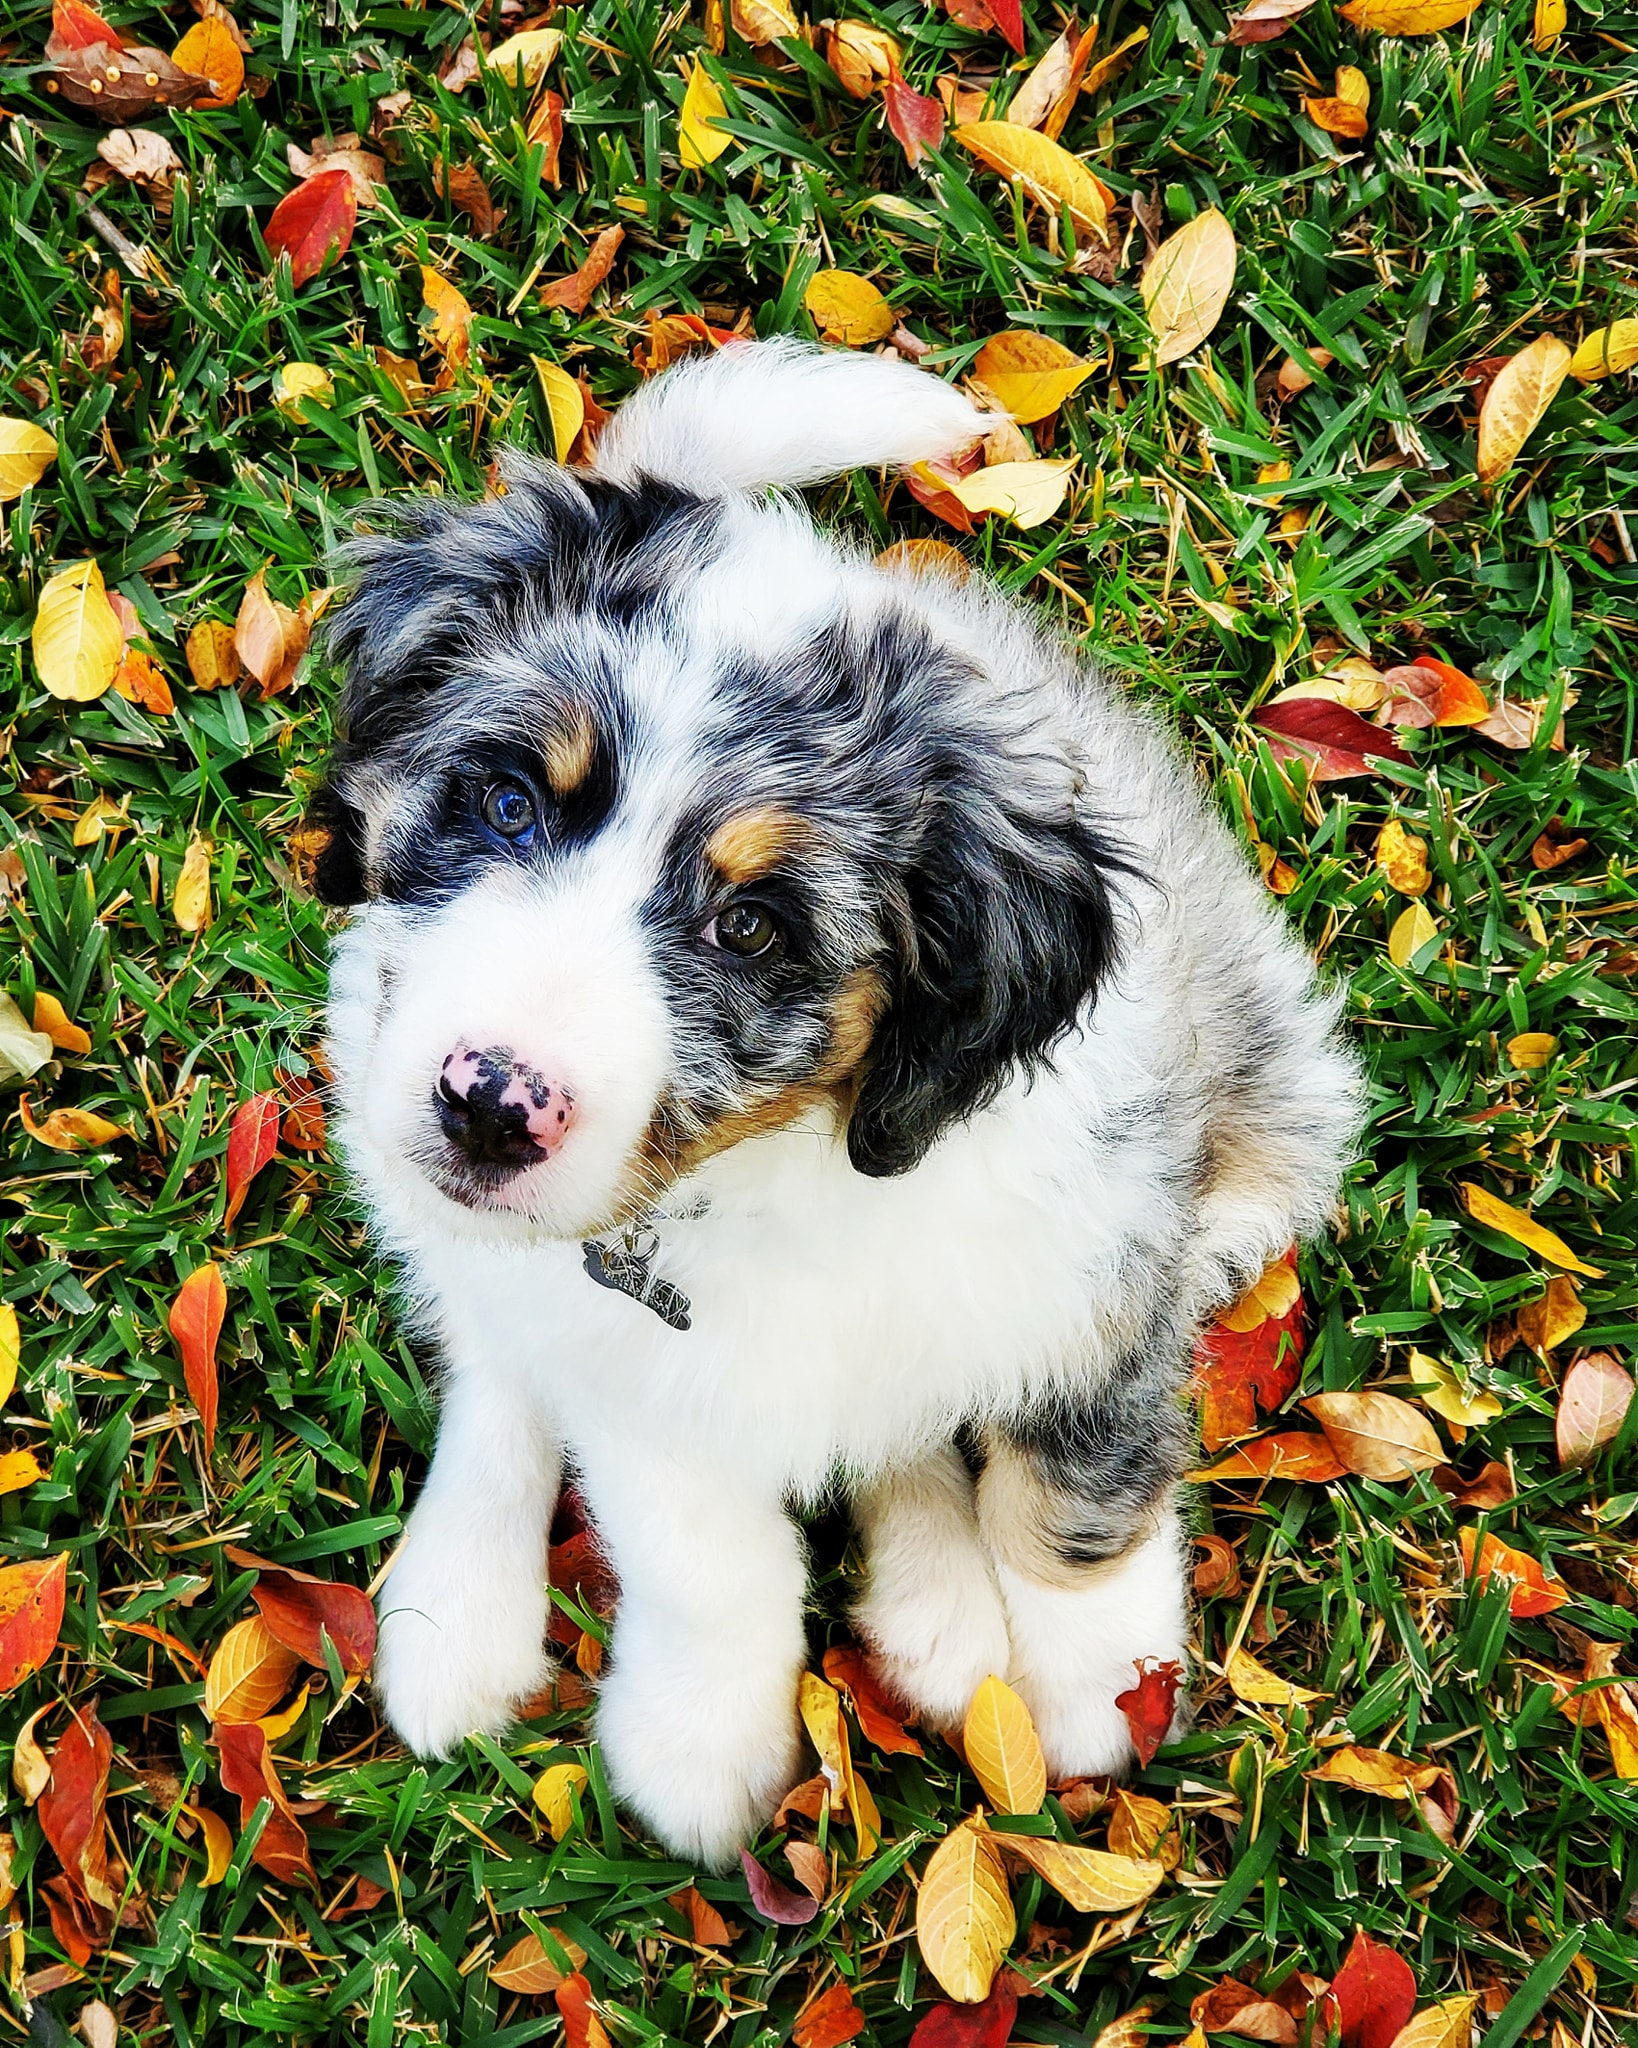 blue merle aussiedoodle puppy with copper and white chest